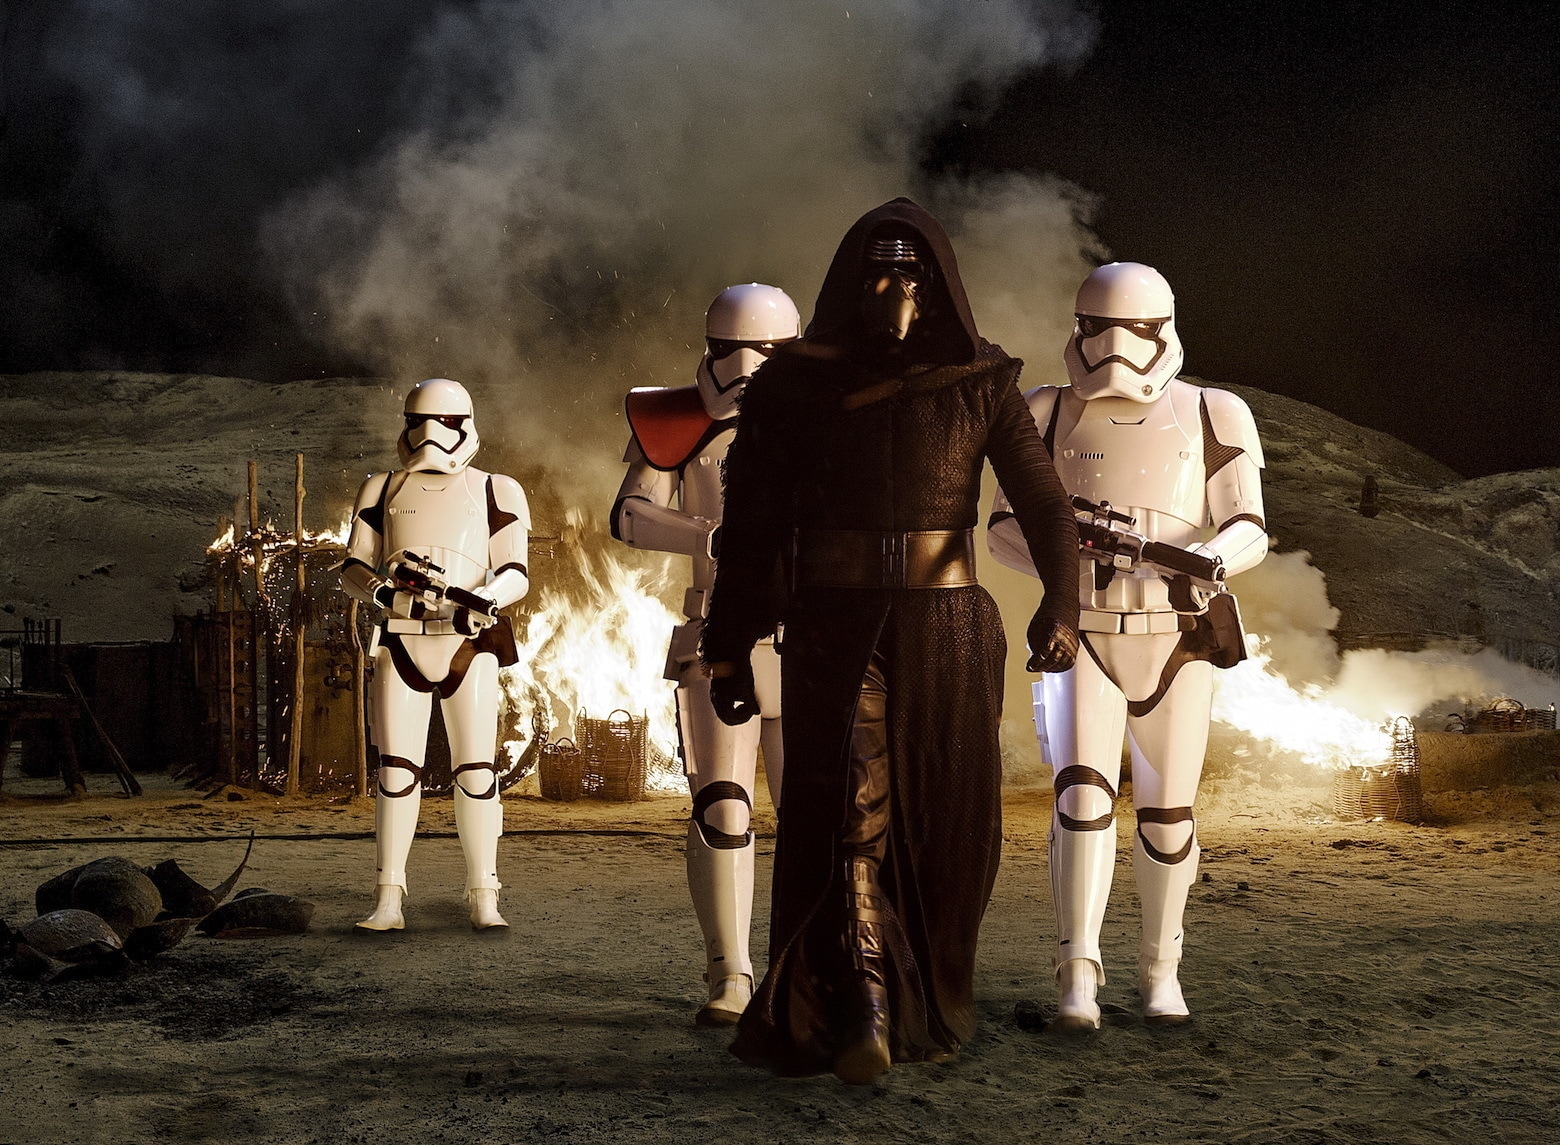 Adam Driver as Kylo Ren leading First Order stormtroopers.